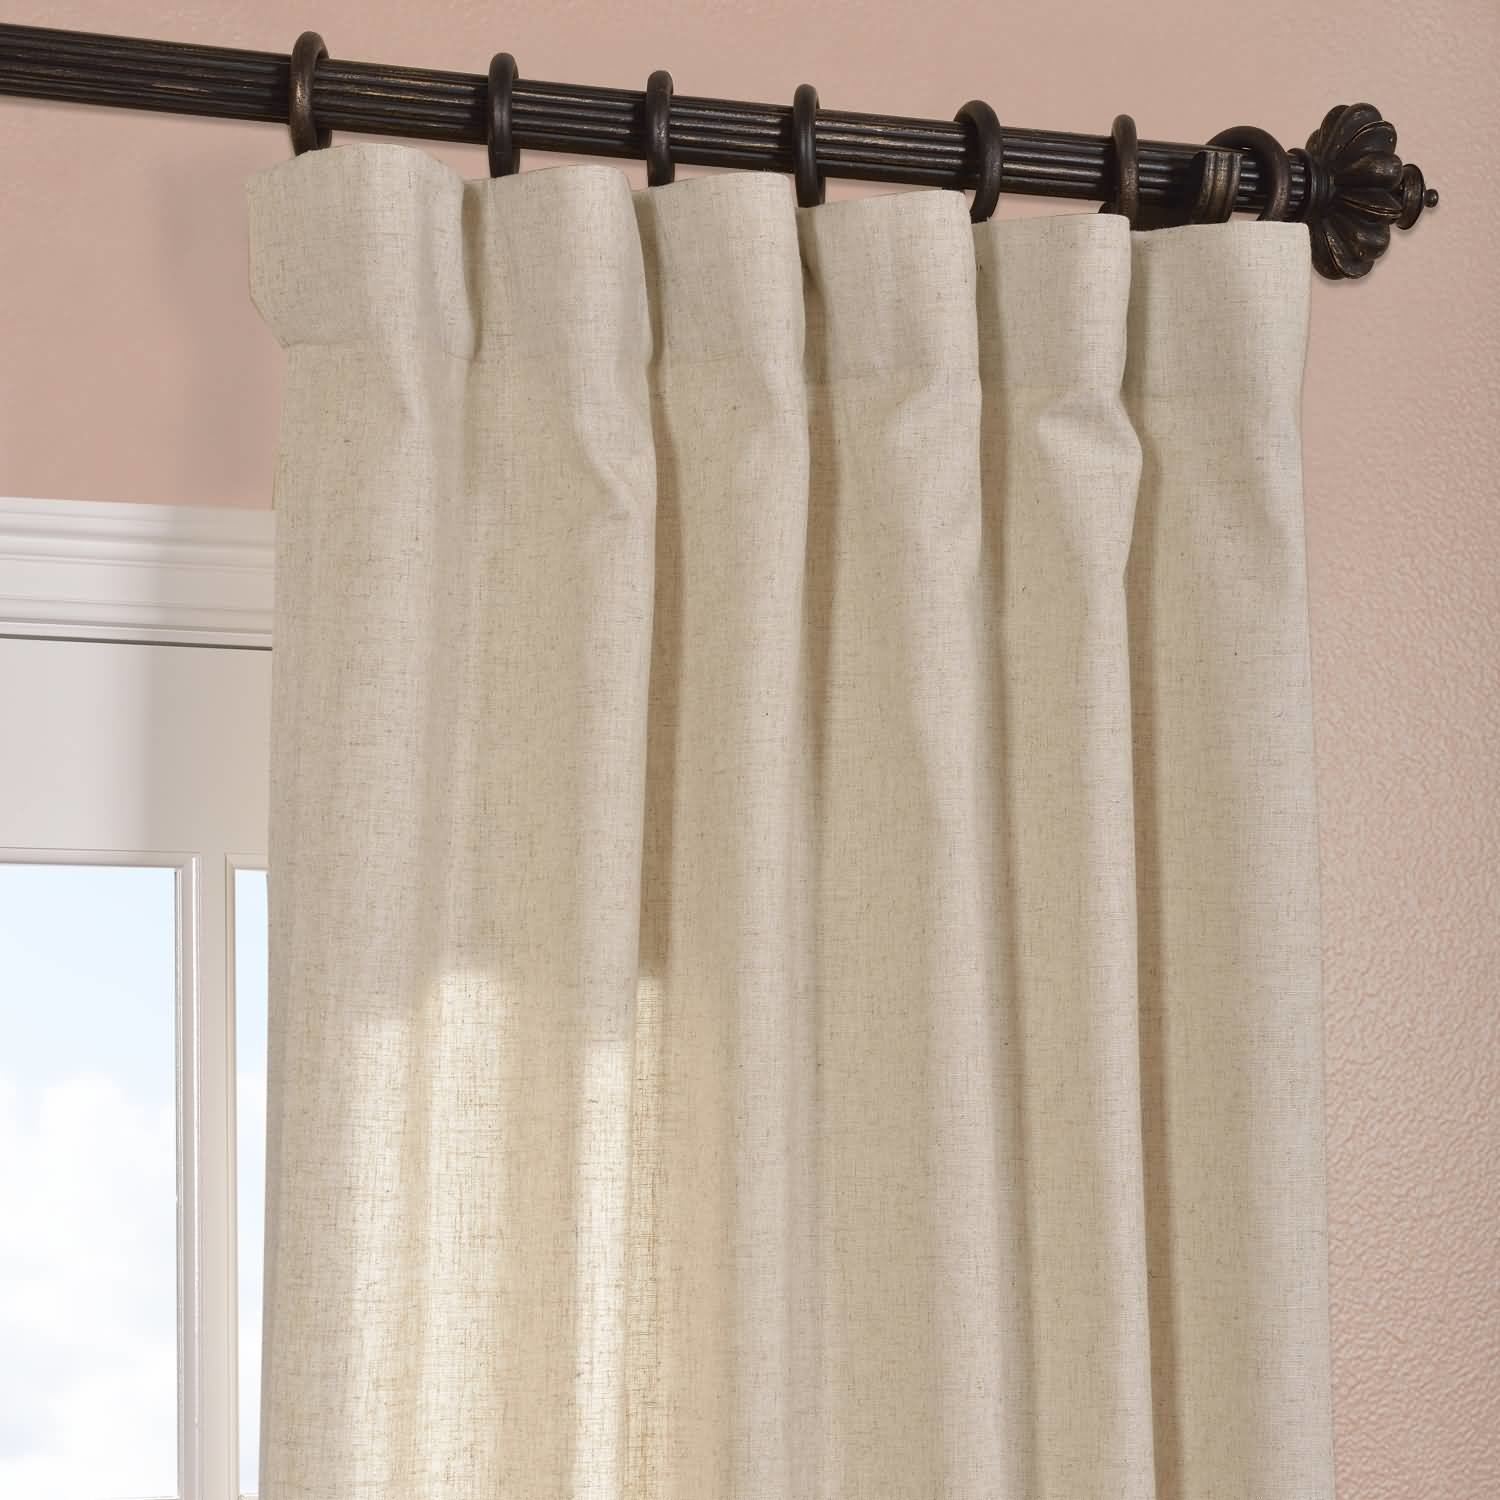 Half Price Drapes Hilo Natural Linen Solid Semi Sheer Rod Pocket Throughout Natural Curtain Panels (View 8 of 15)